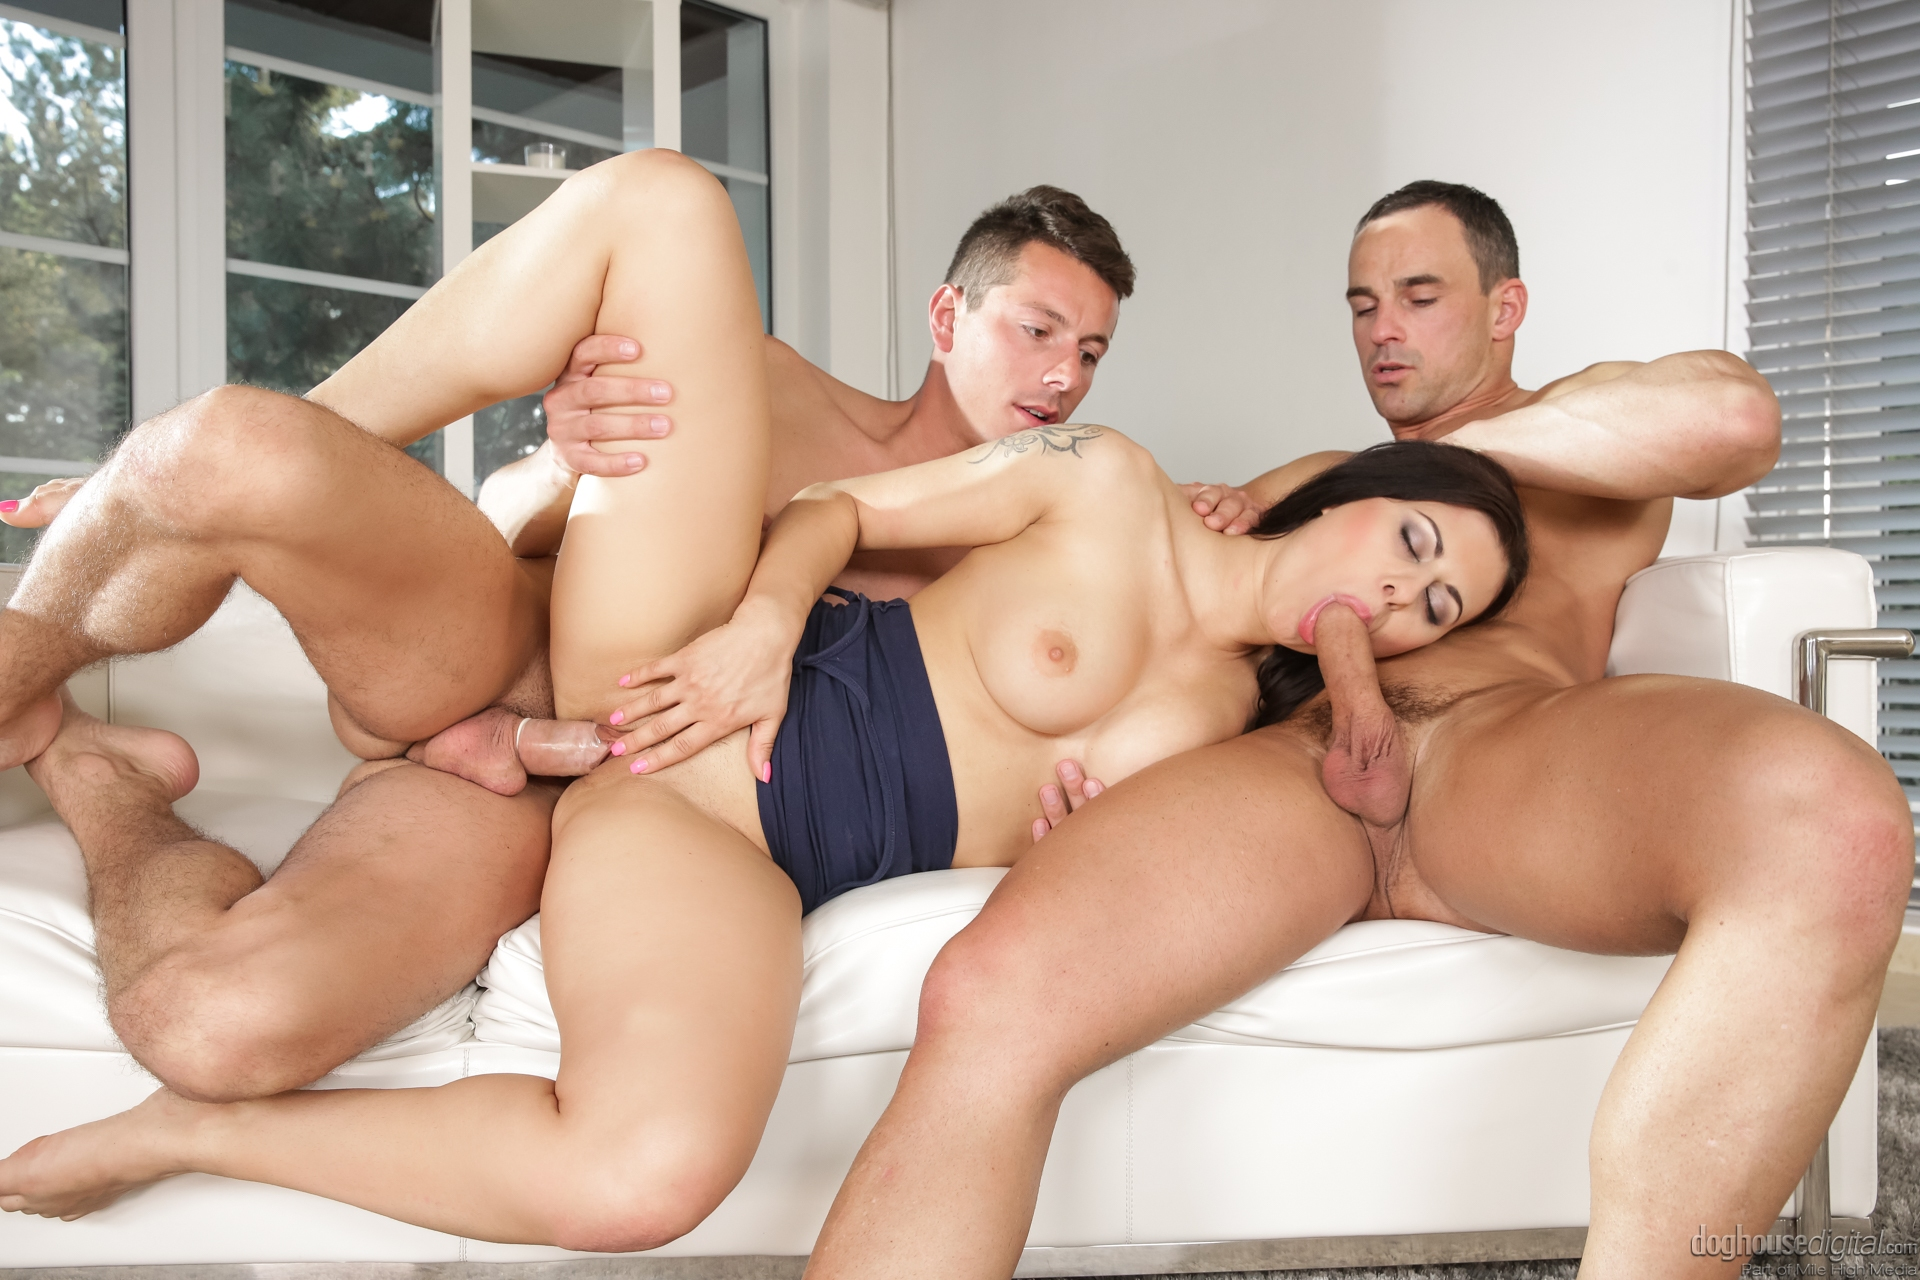 3some eating pussy and fucking pussy sametime 1